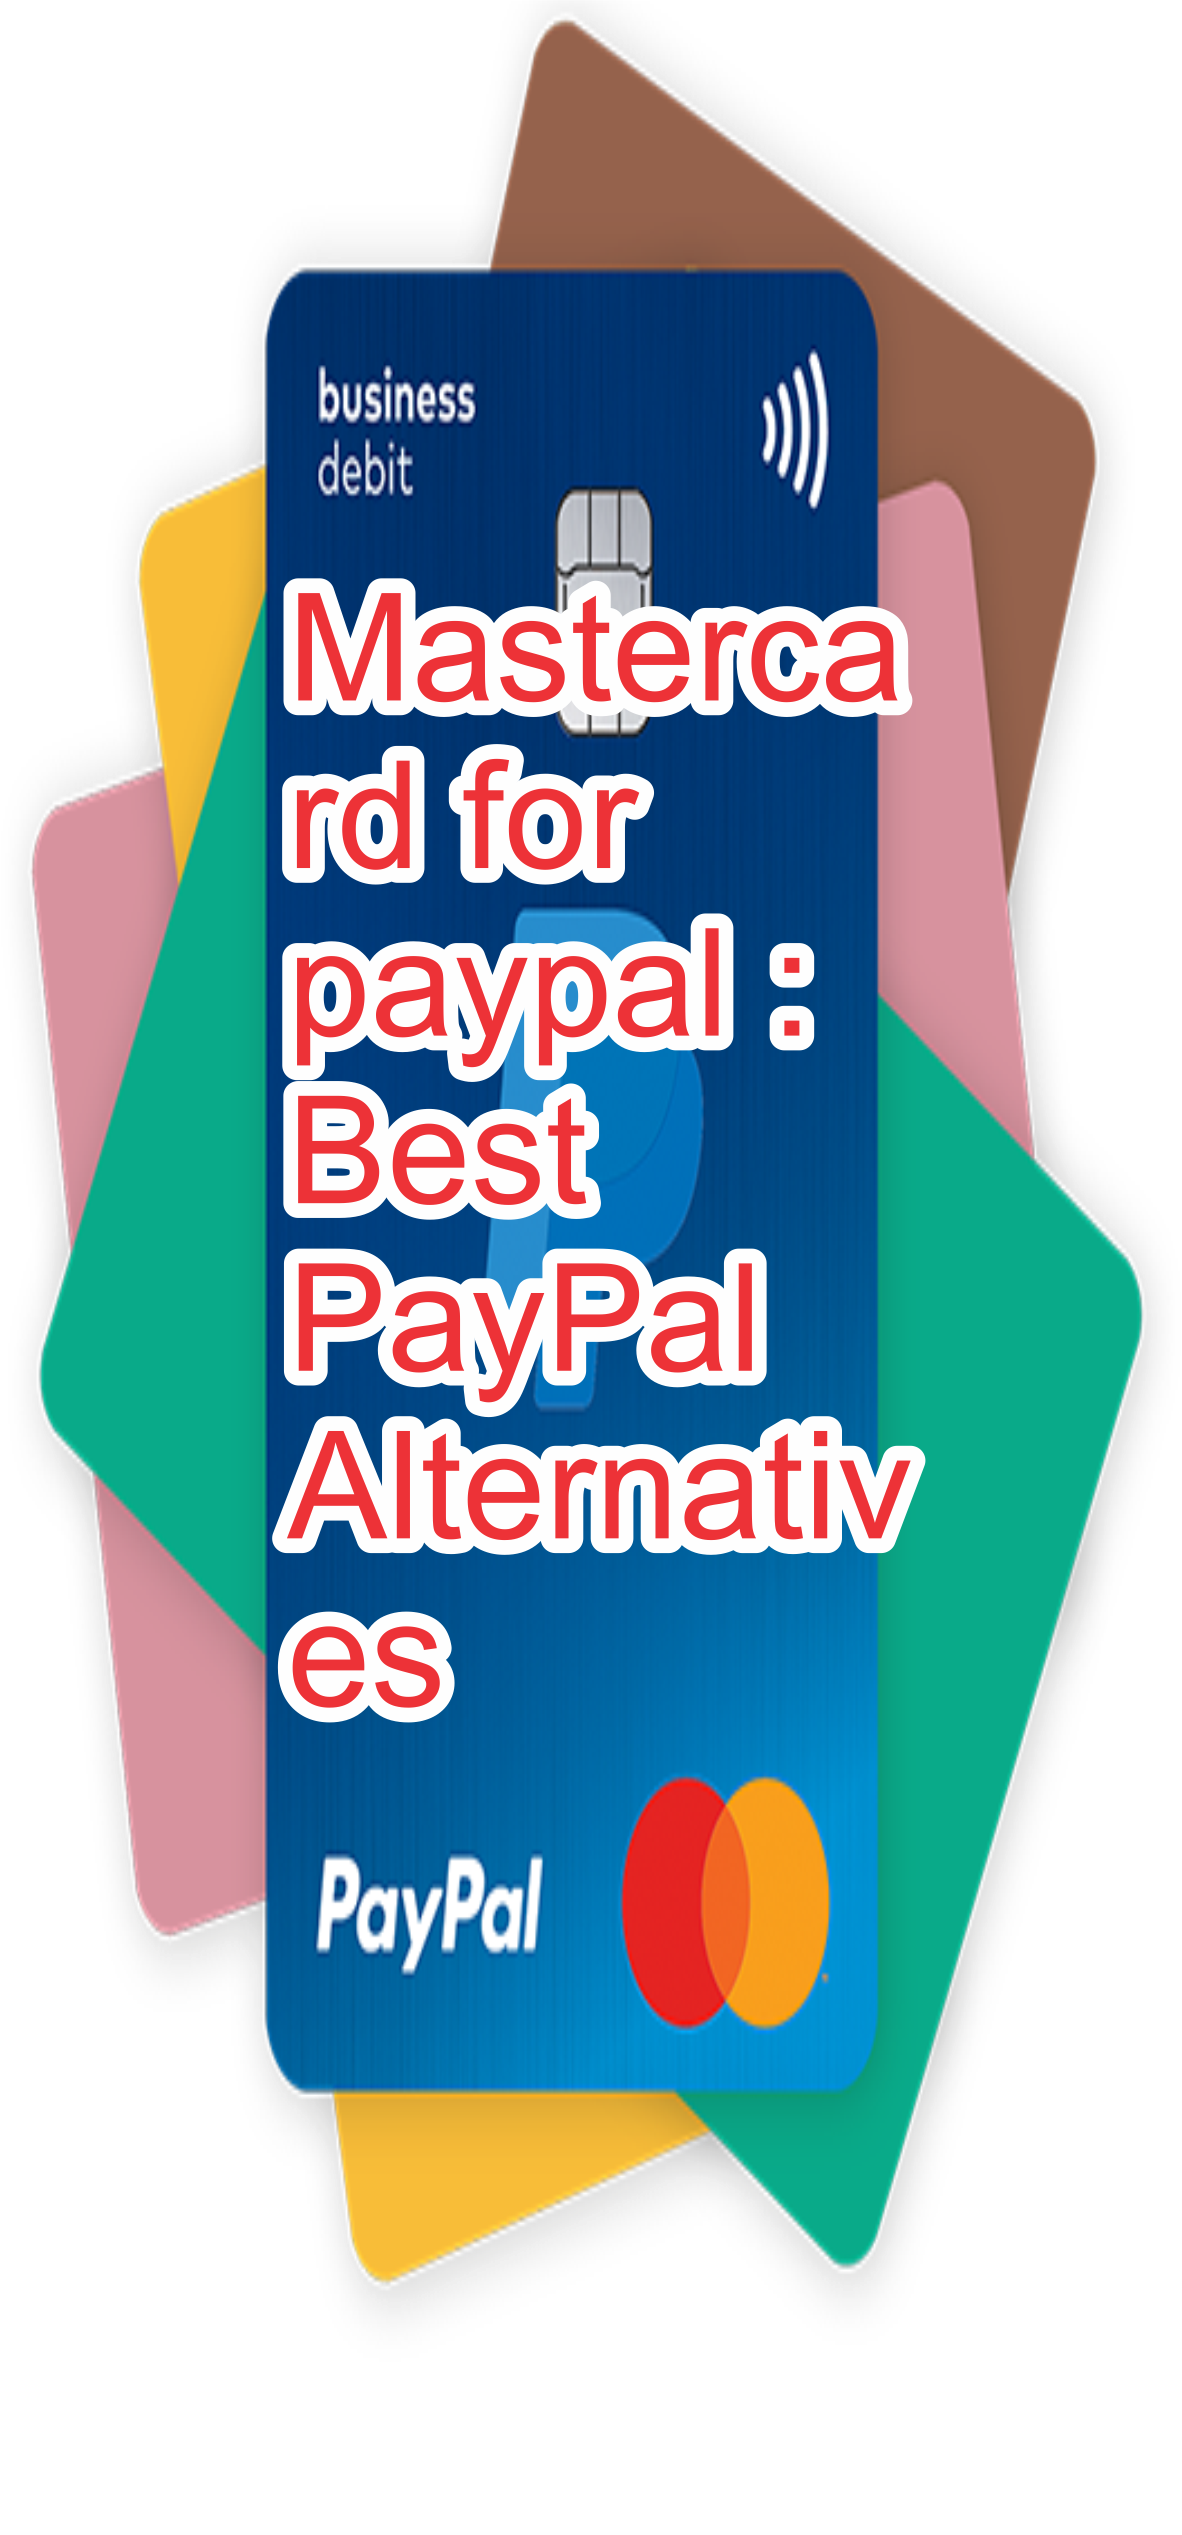 Mastercard for paypal : Best PayPal Alternatives